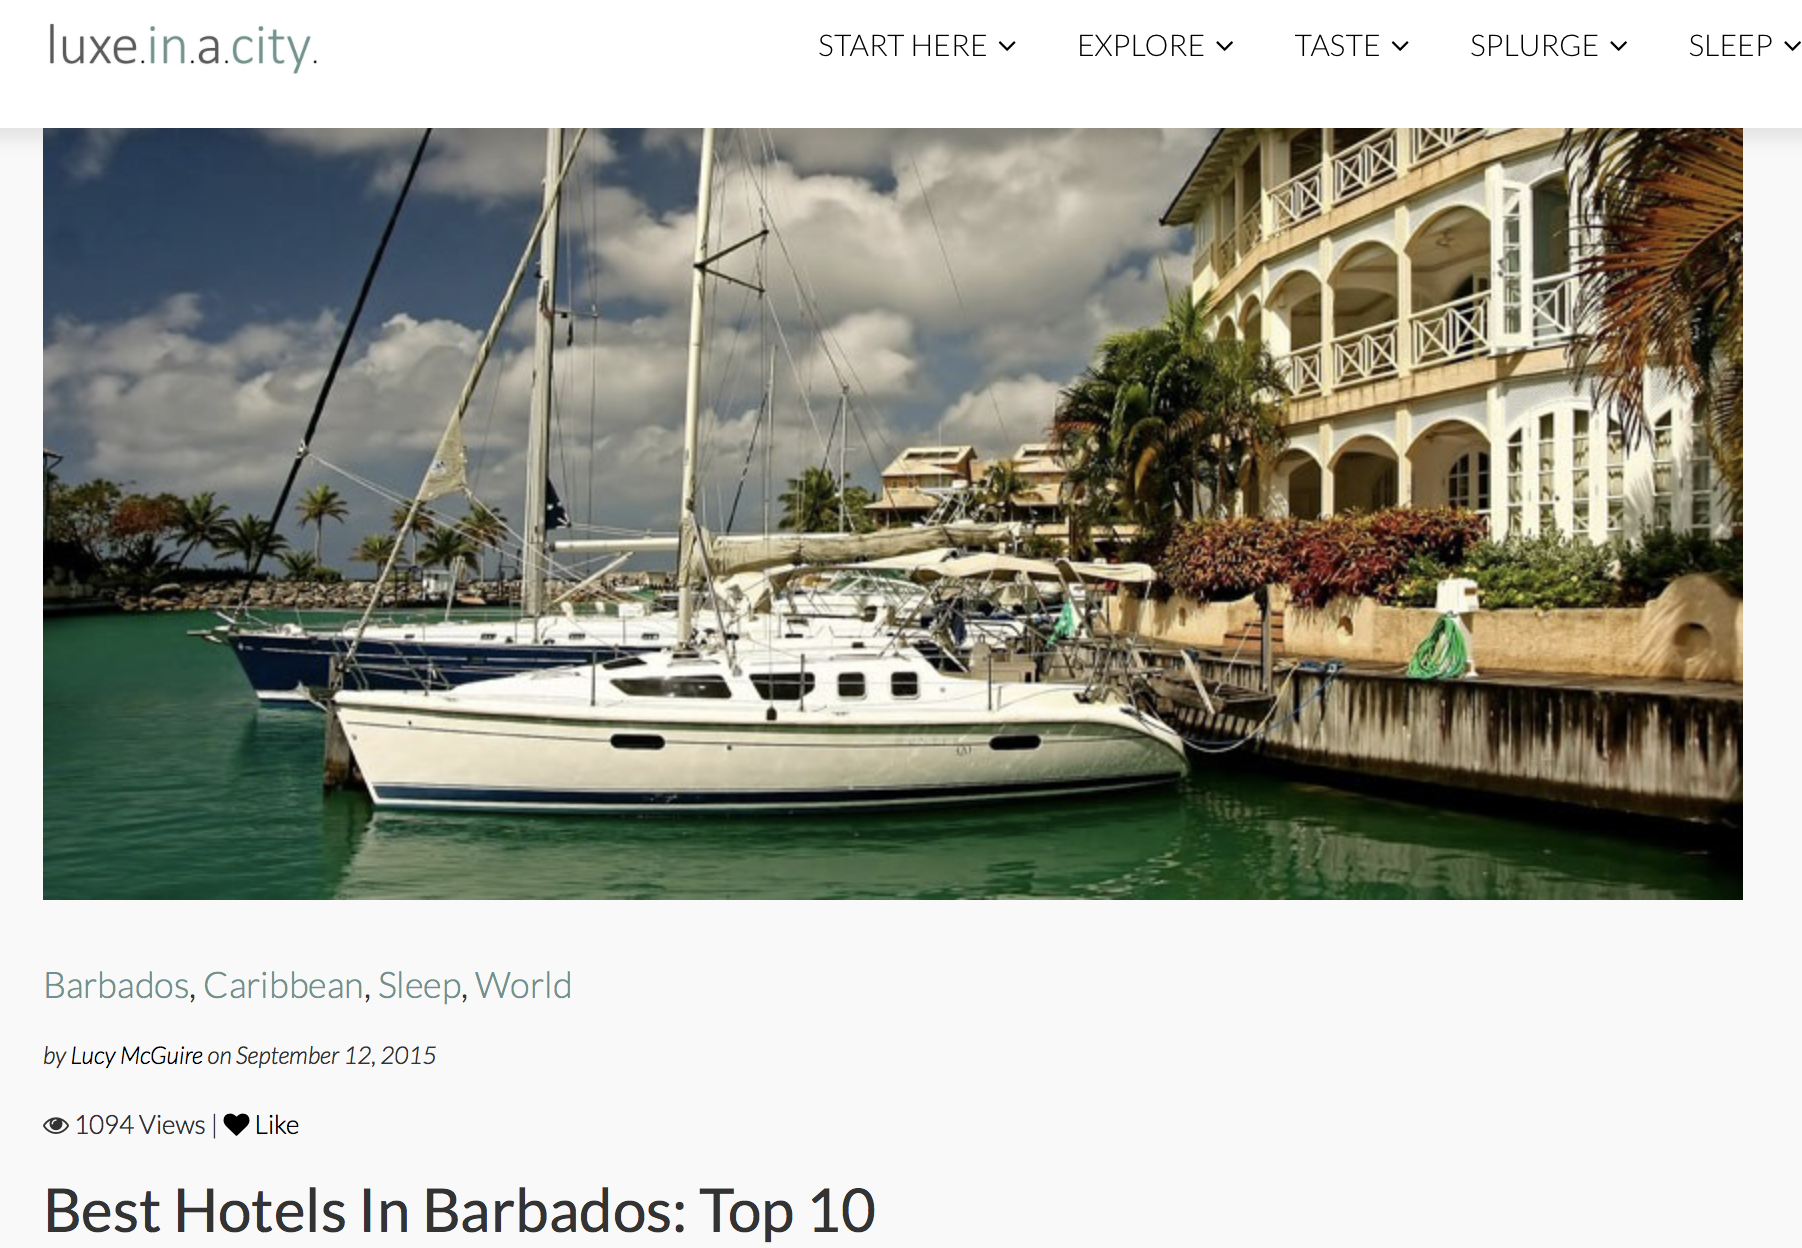 Best Hotels in Barbados Top 10